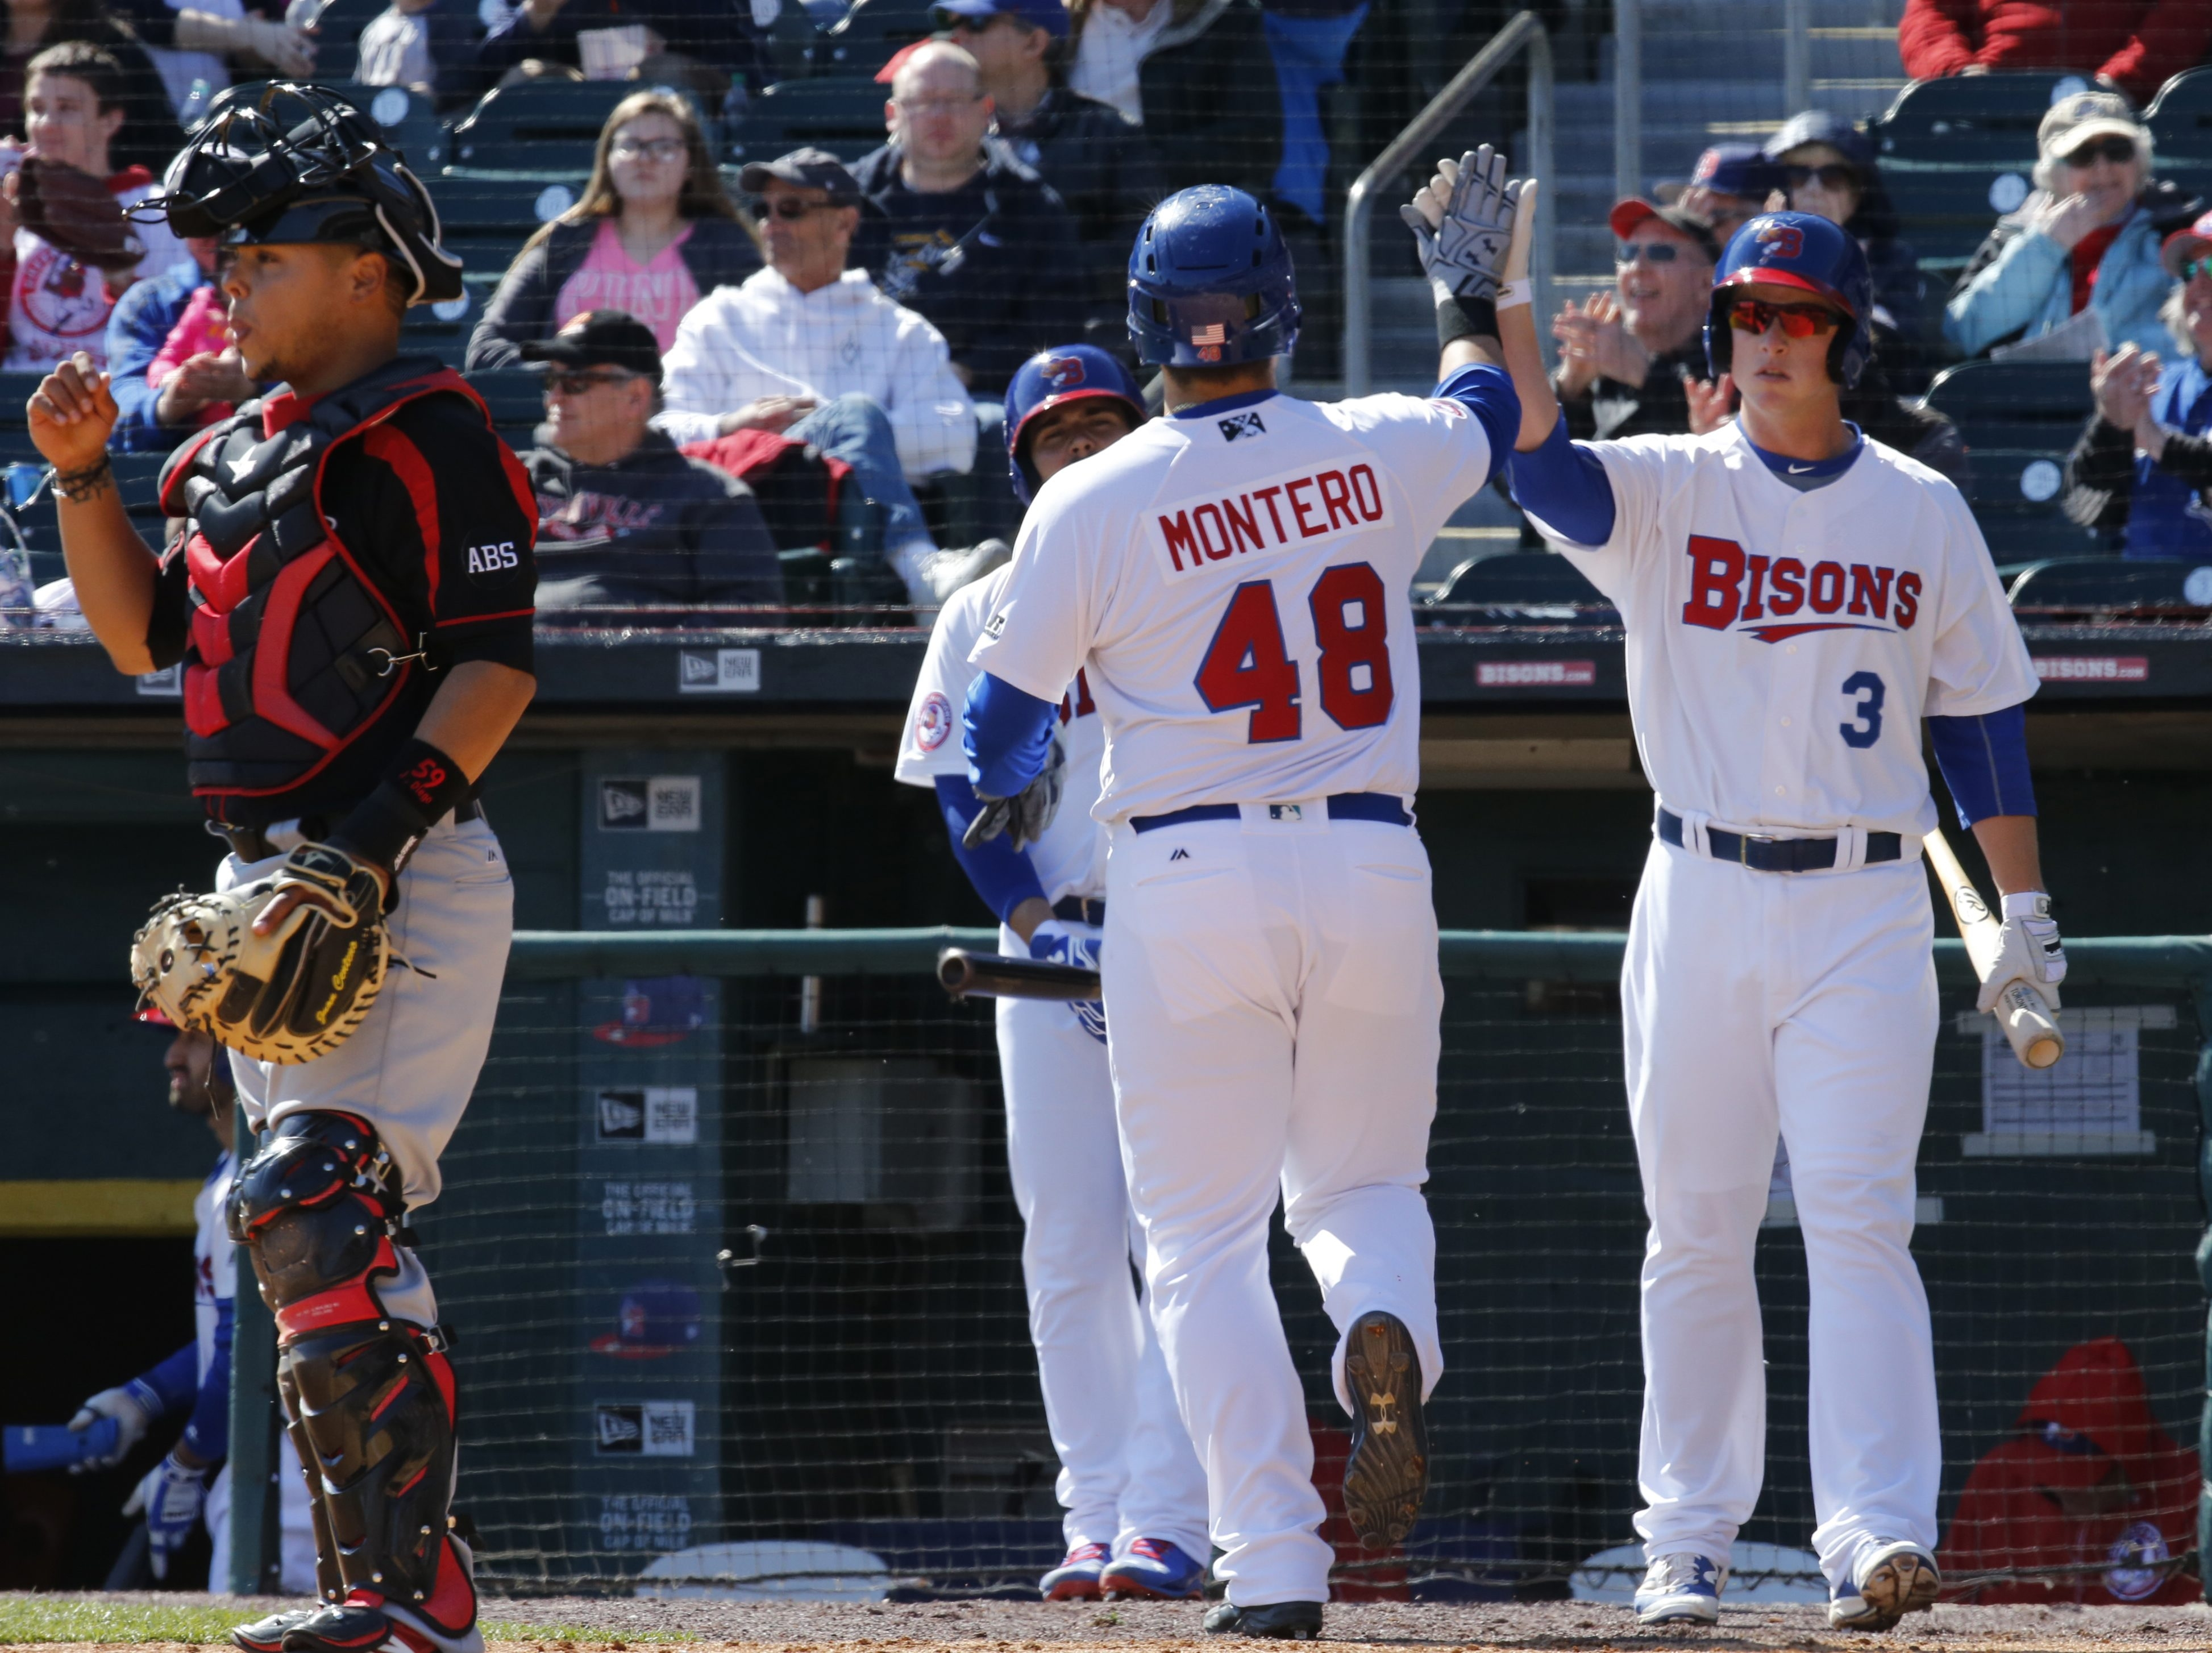 Jesus Montero of the Bisons comes home with the go-ahead run on a double by teammate Junior Lake in the seventh inning. Lake said he made adjustments at the plate against Red Wings starter Pat Dean.